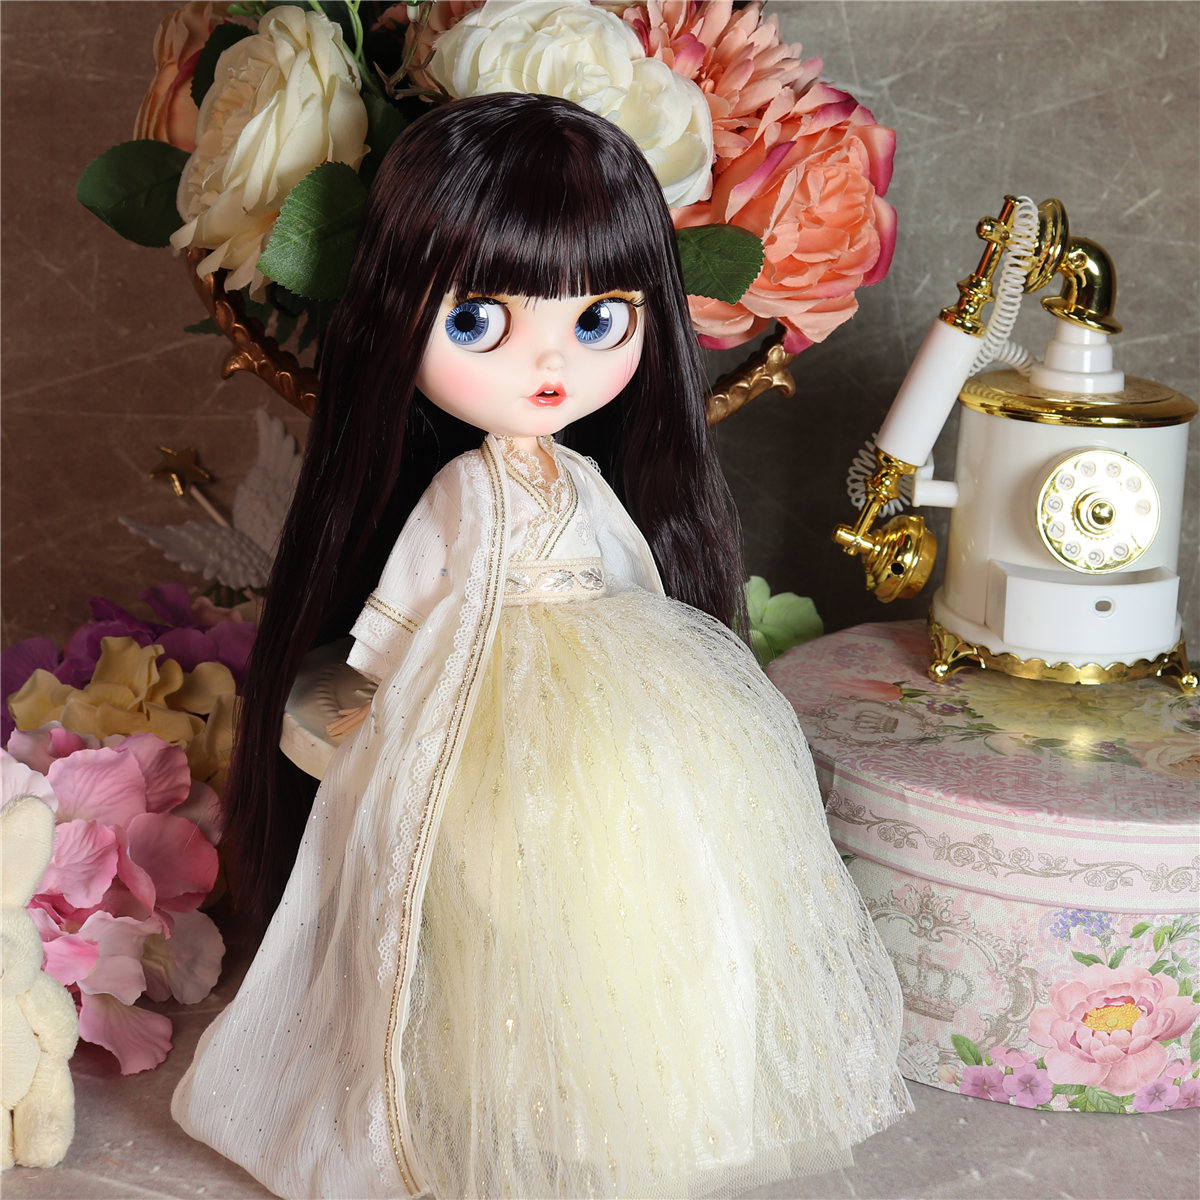 Jacey – Premium Custom Blythe Doll with Smiling Face 4